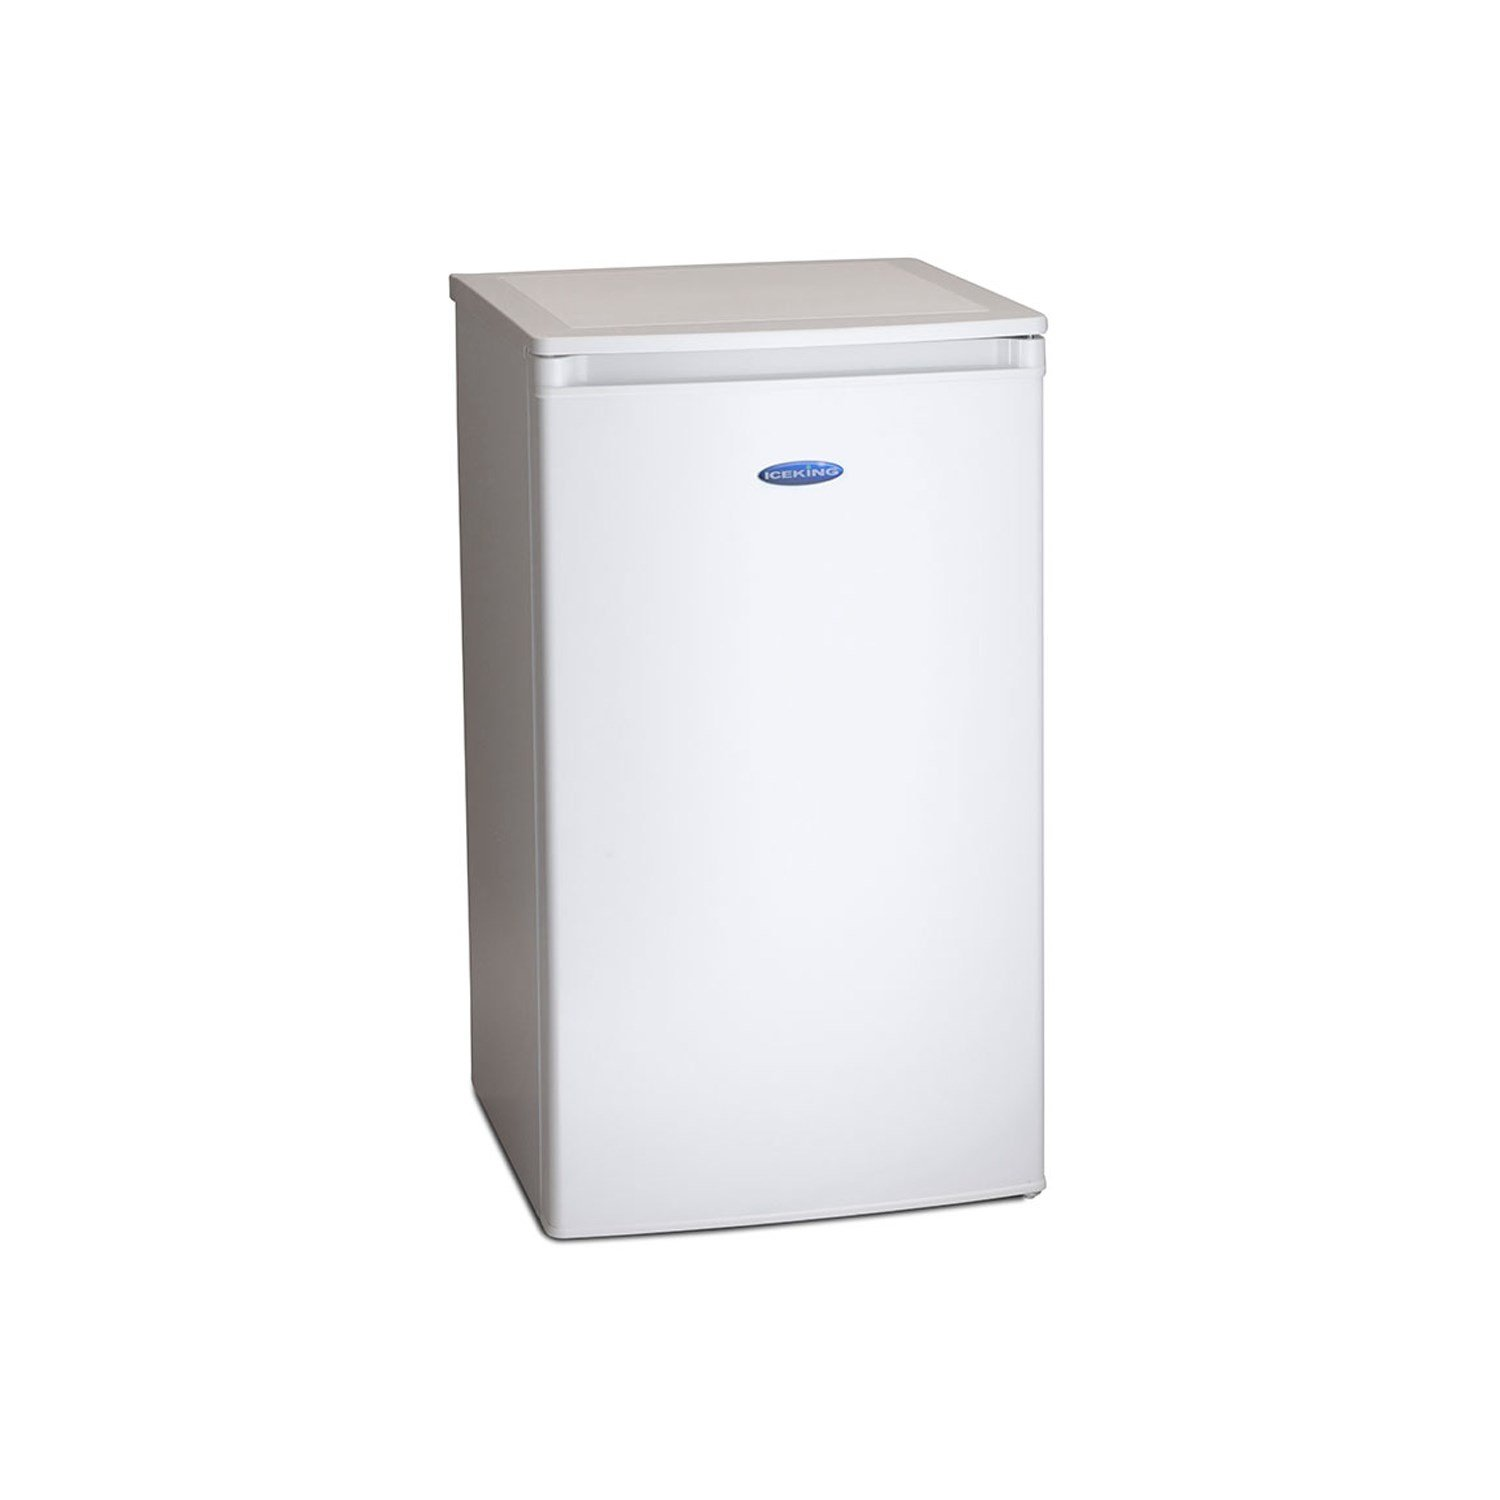 Ice King Under Counter Freezer 70L [Energy Class A+] RZ109AP2